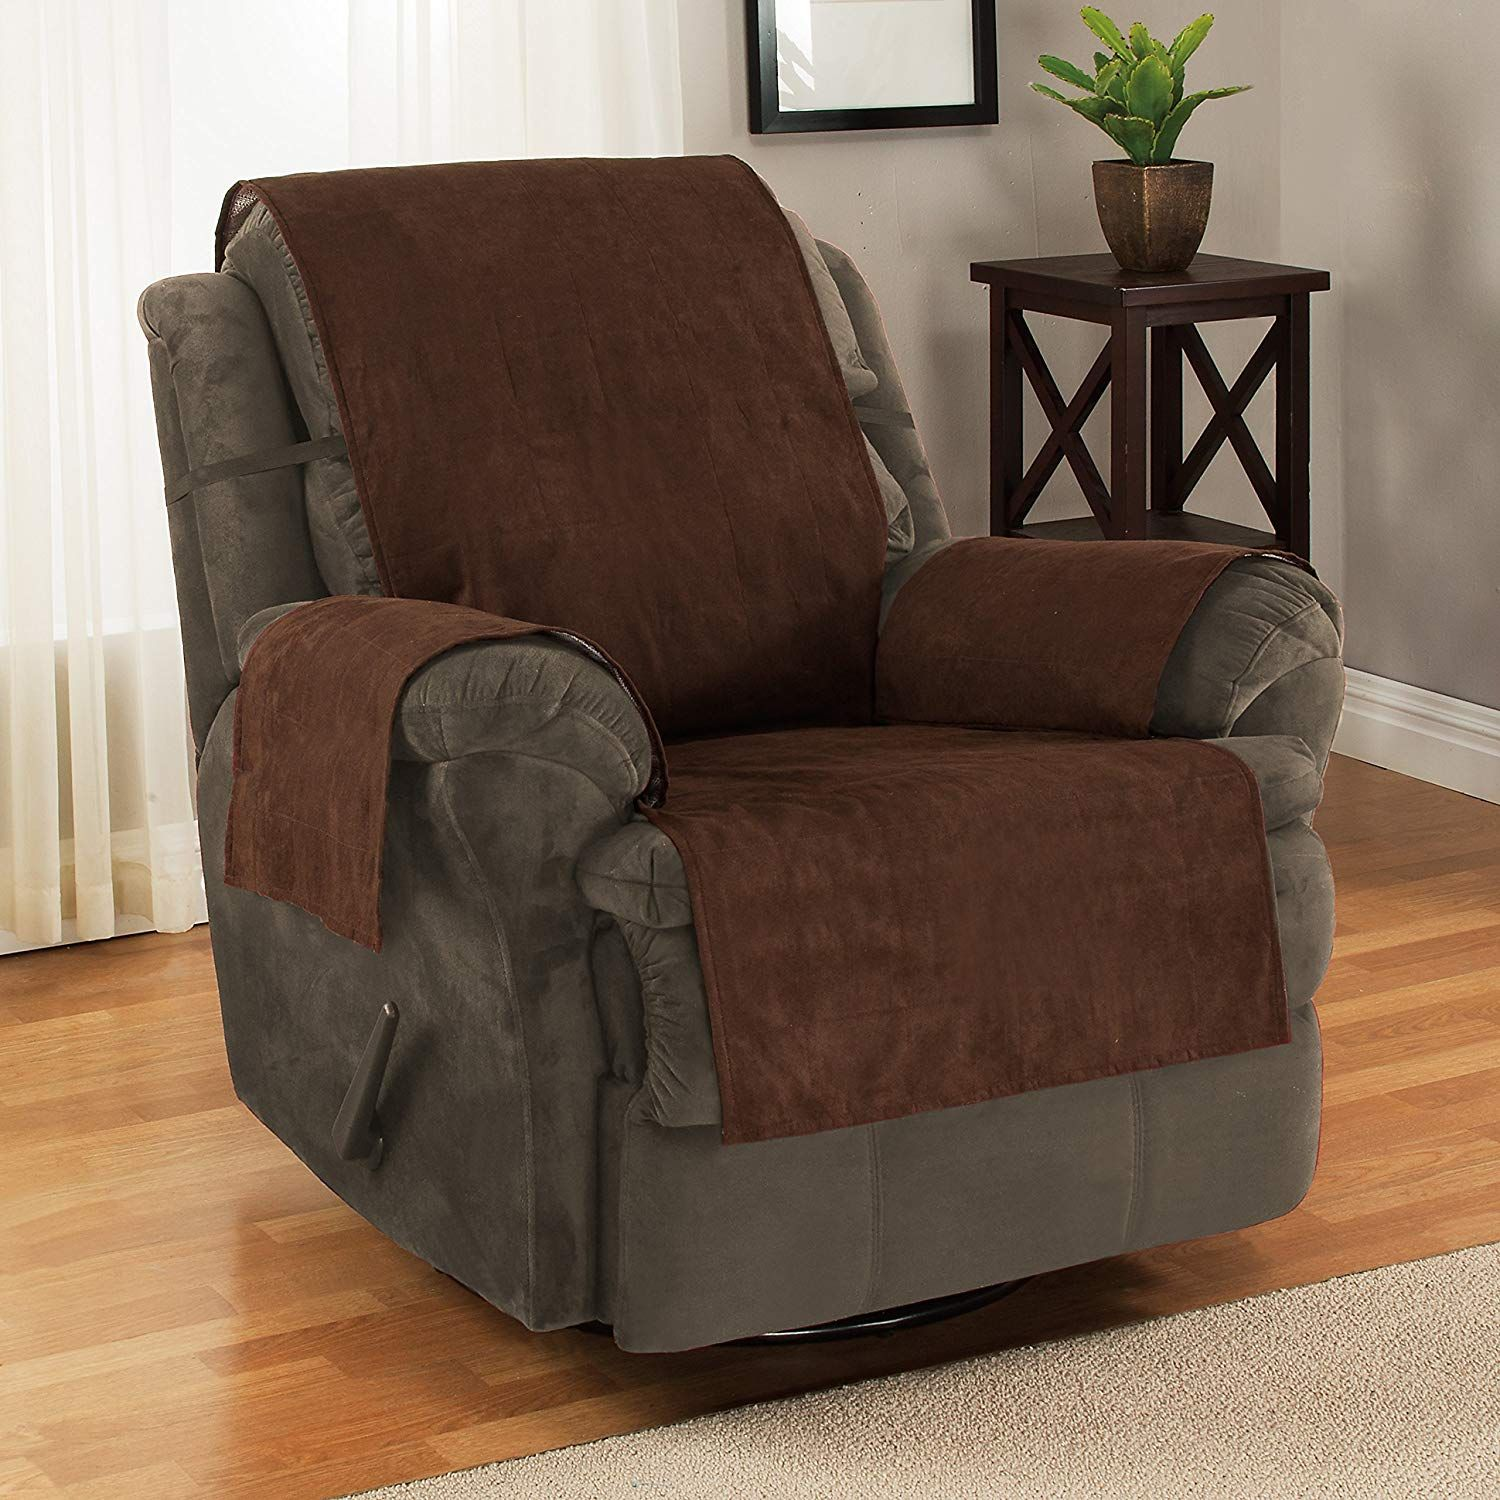 Top 10 Best Recliner Chair Covers in 2020 Reviews